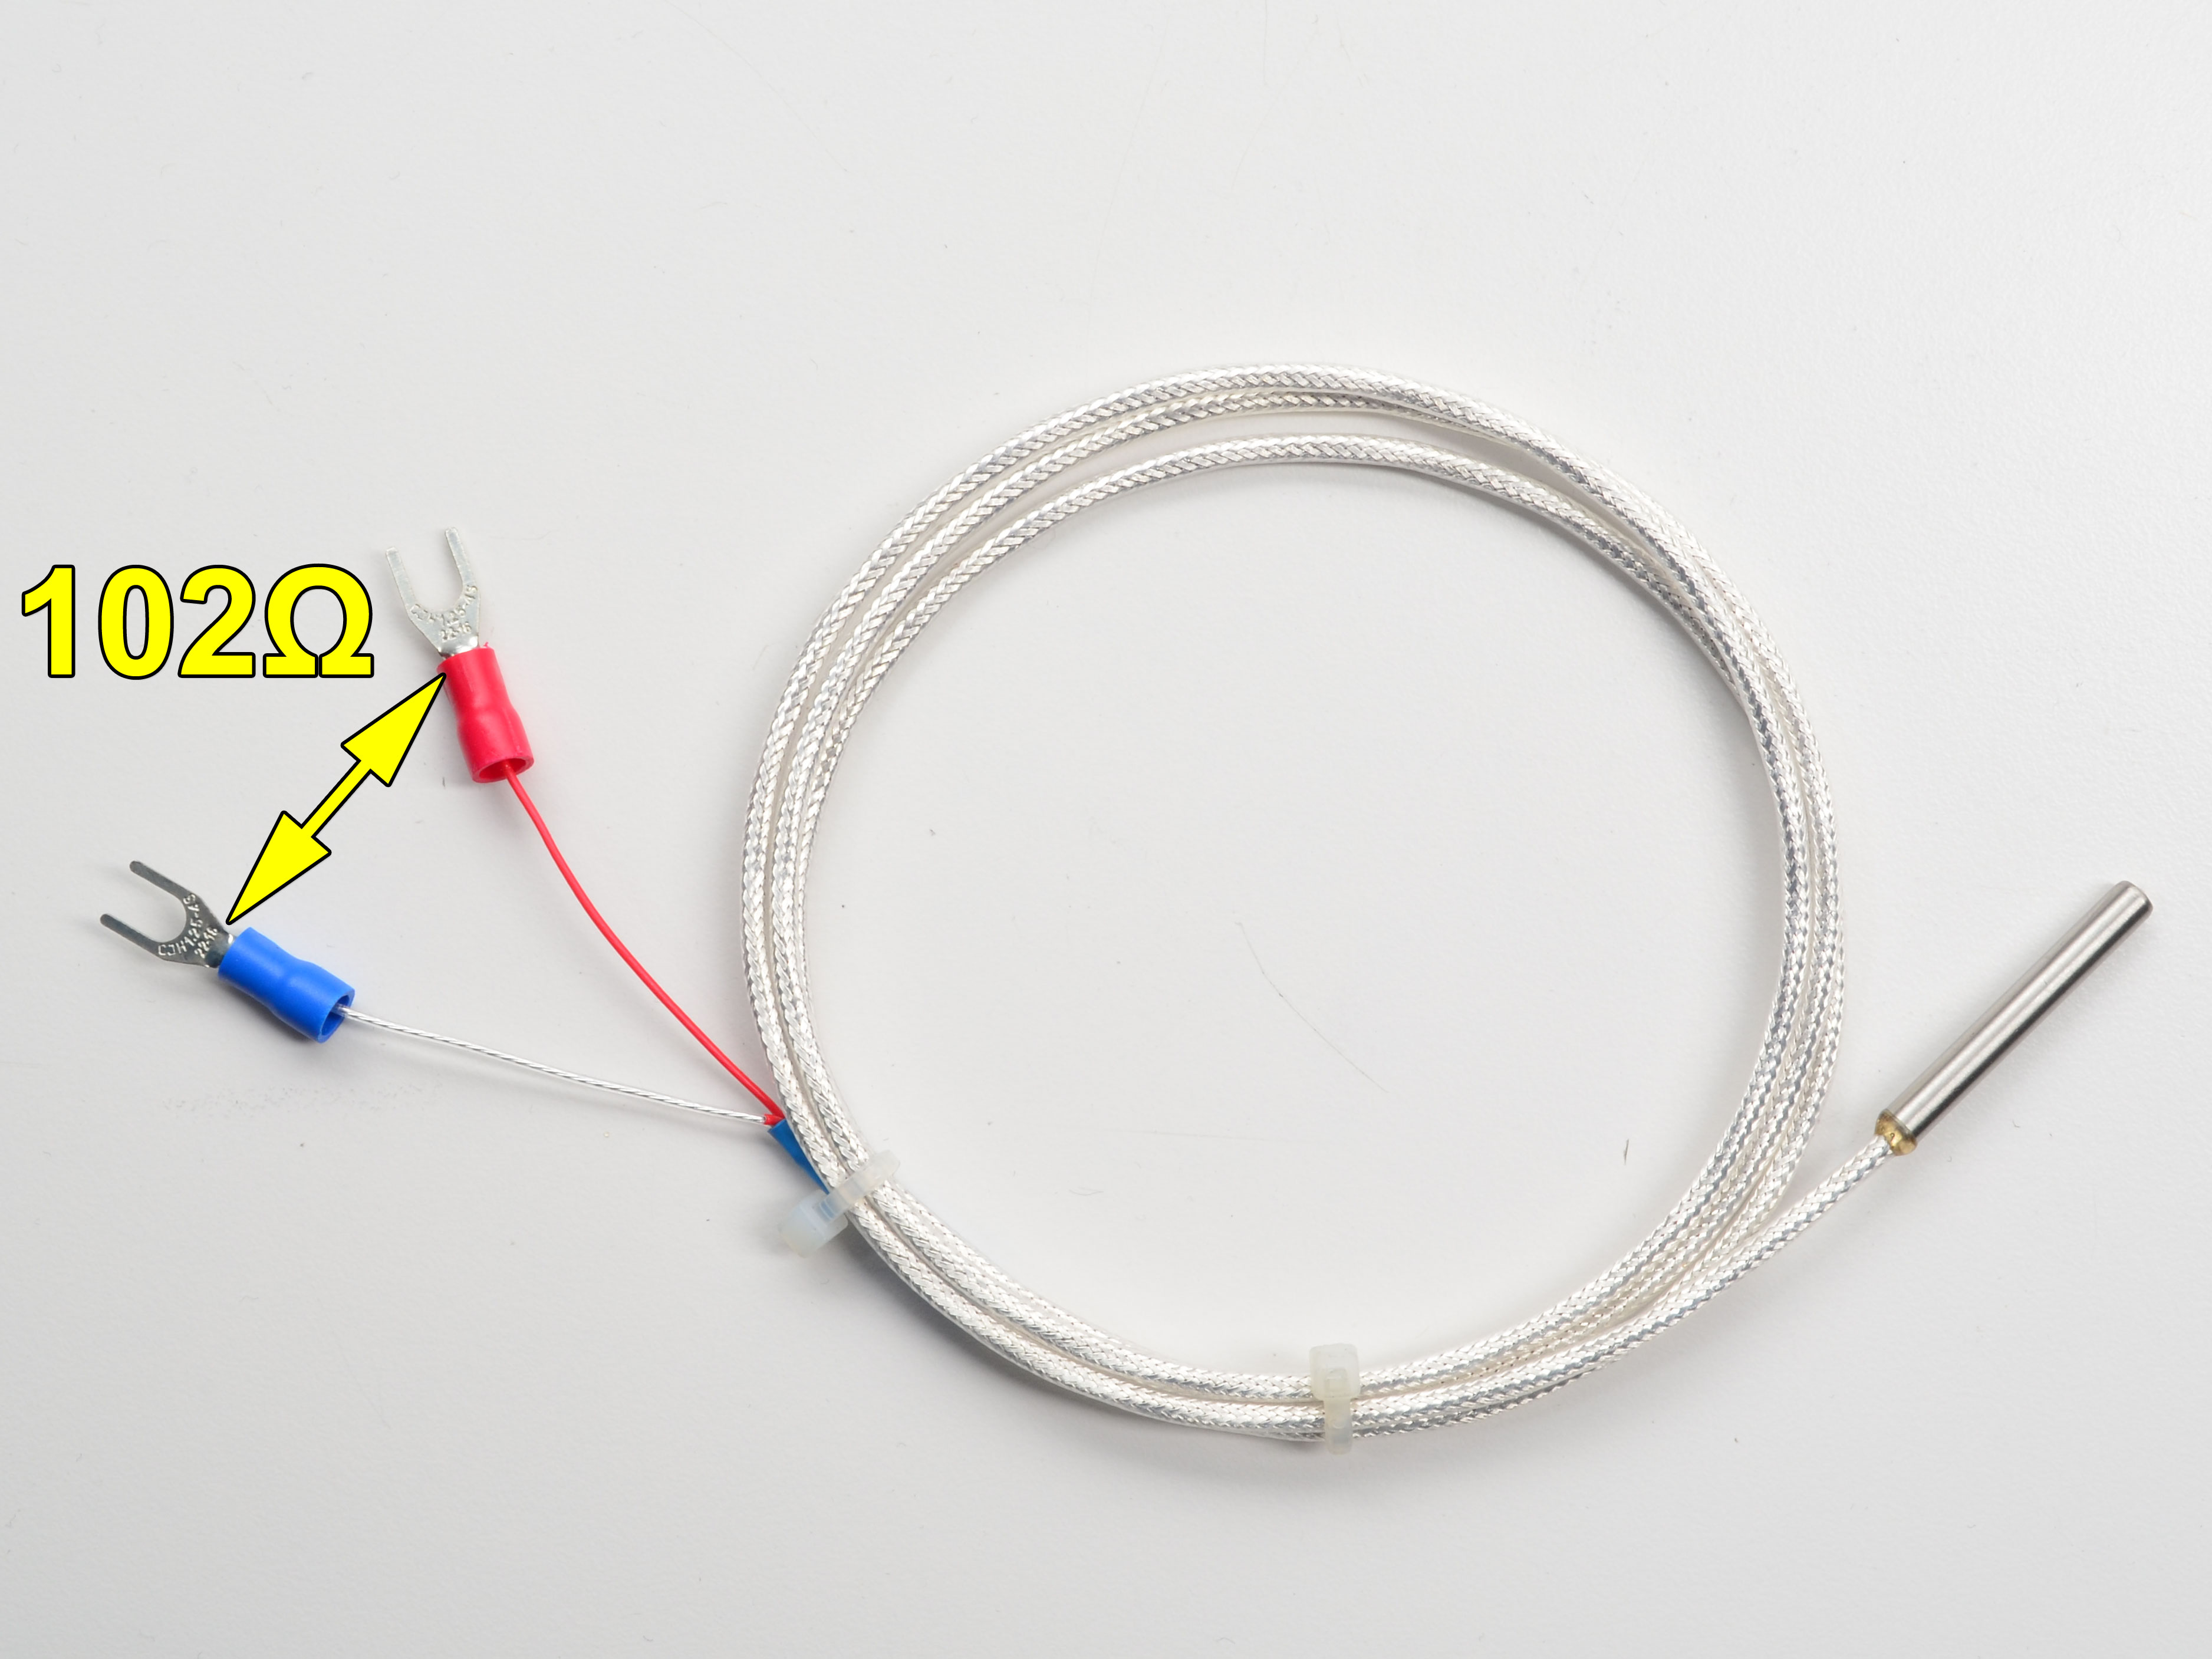 adafruit_products_2wires.jpg